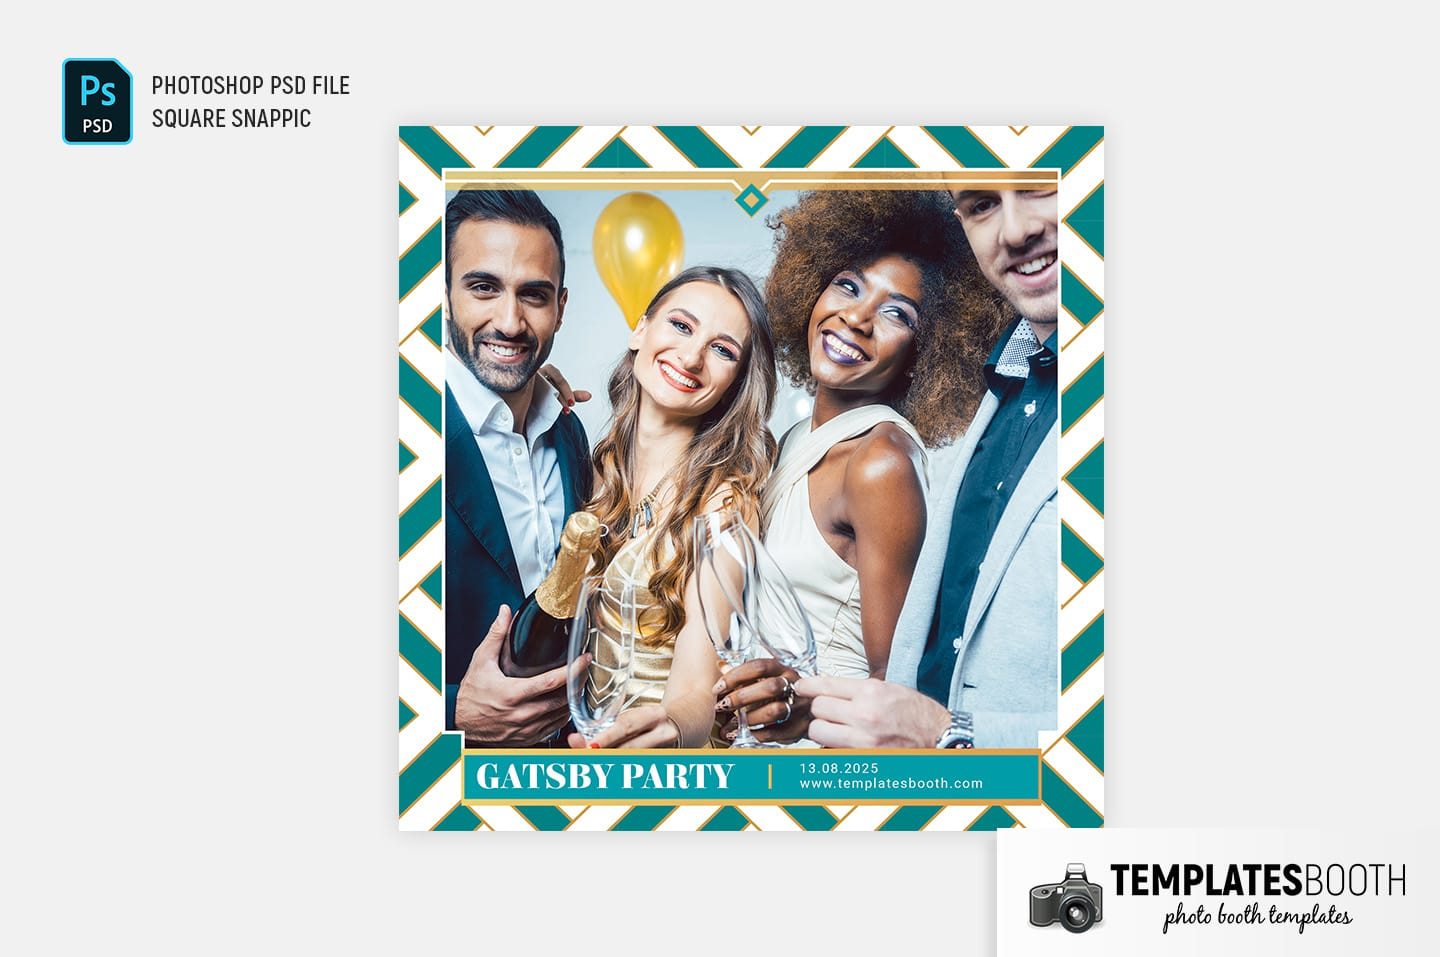 Turquoise Glamour Photo Booth Template (Snappic)